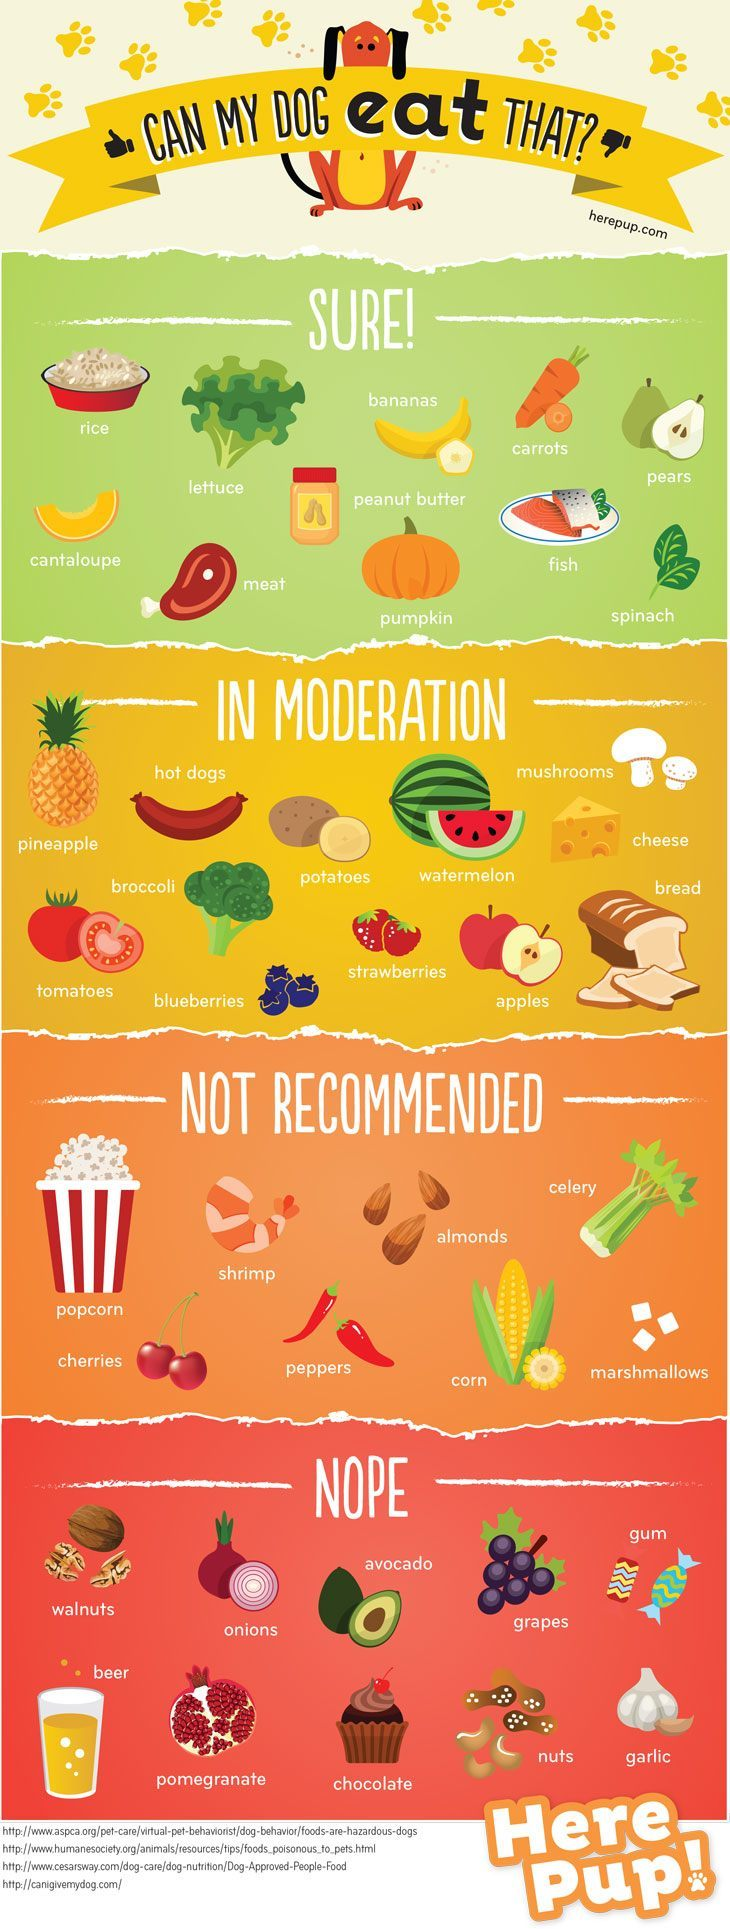 dogfood_infographic-3.jpg